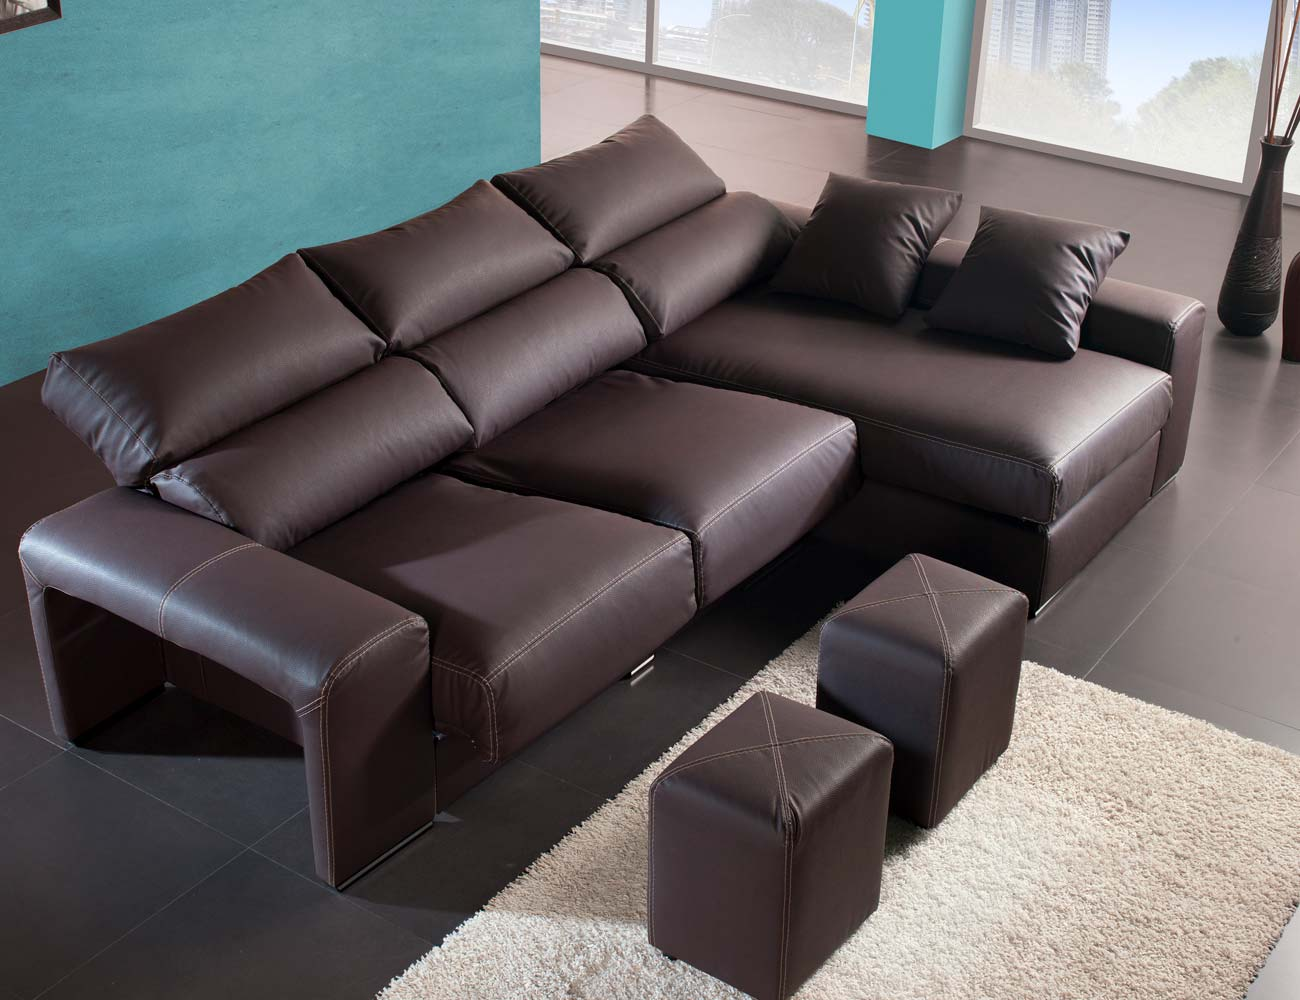 Sofa chaiselongue moderno polipiel chocolate poufs taburetes21